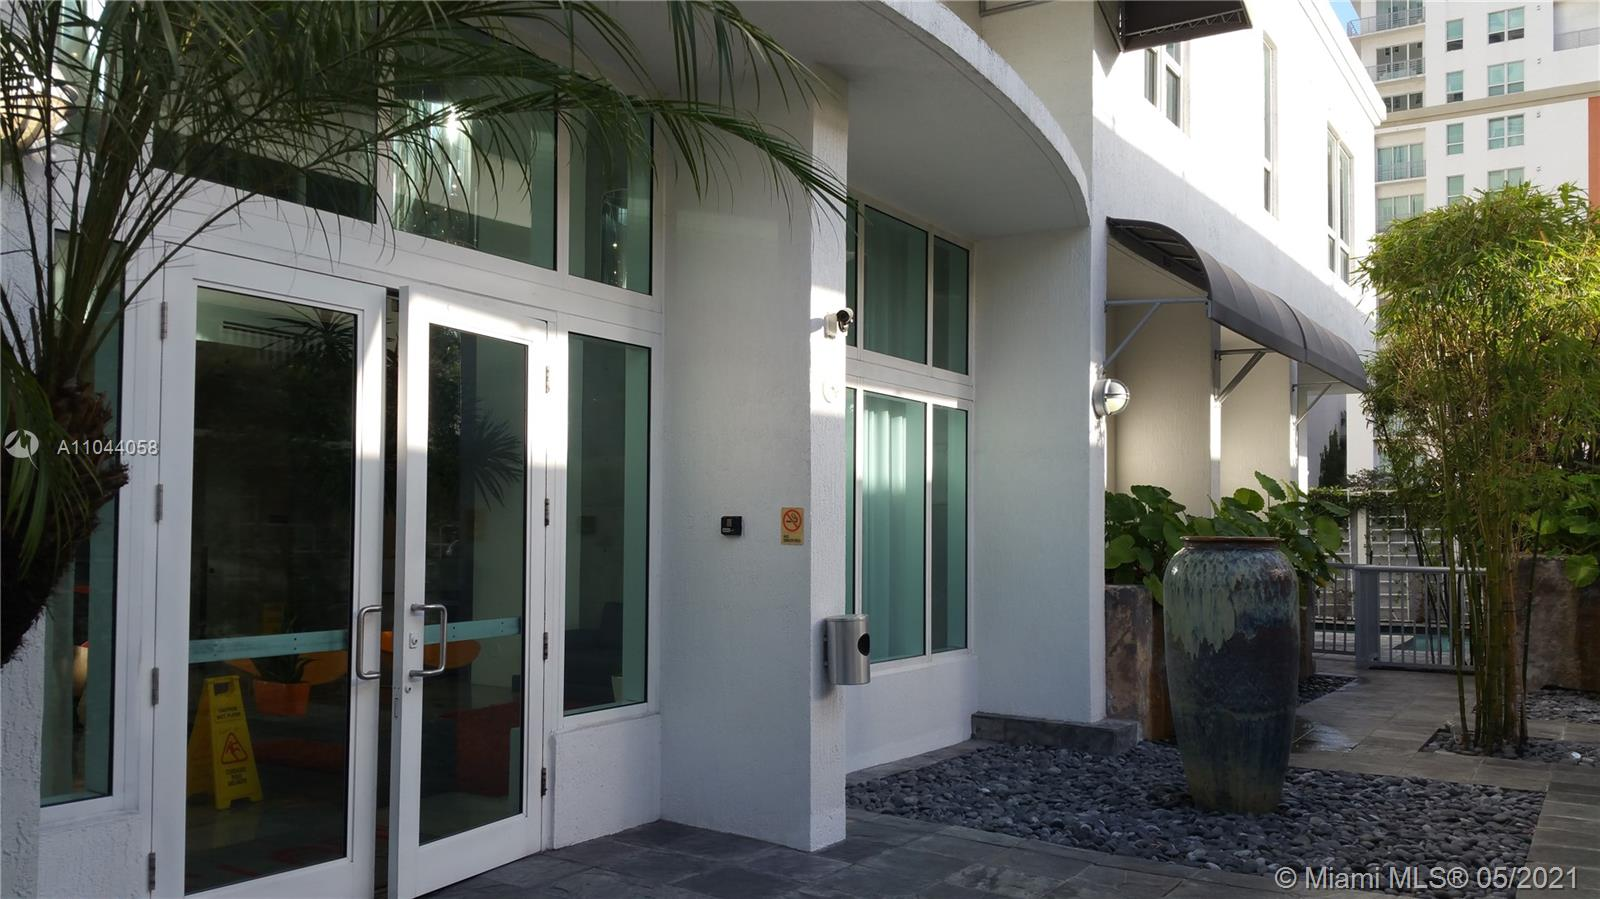 Beautiful and modern Loft in the heart of Downtown with stainless steel appliances, concrete floors with pool, gym, walking distance to America Airlines Arena, Bayside Shopping Center, close to Brickell,  nights life , restaurants, Theater , short driving to the beaches, Miami International Airport. Unit is currently rented.